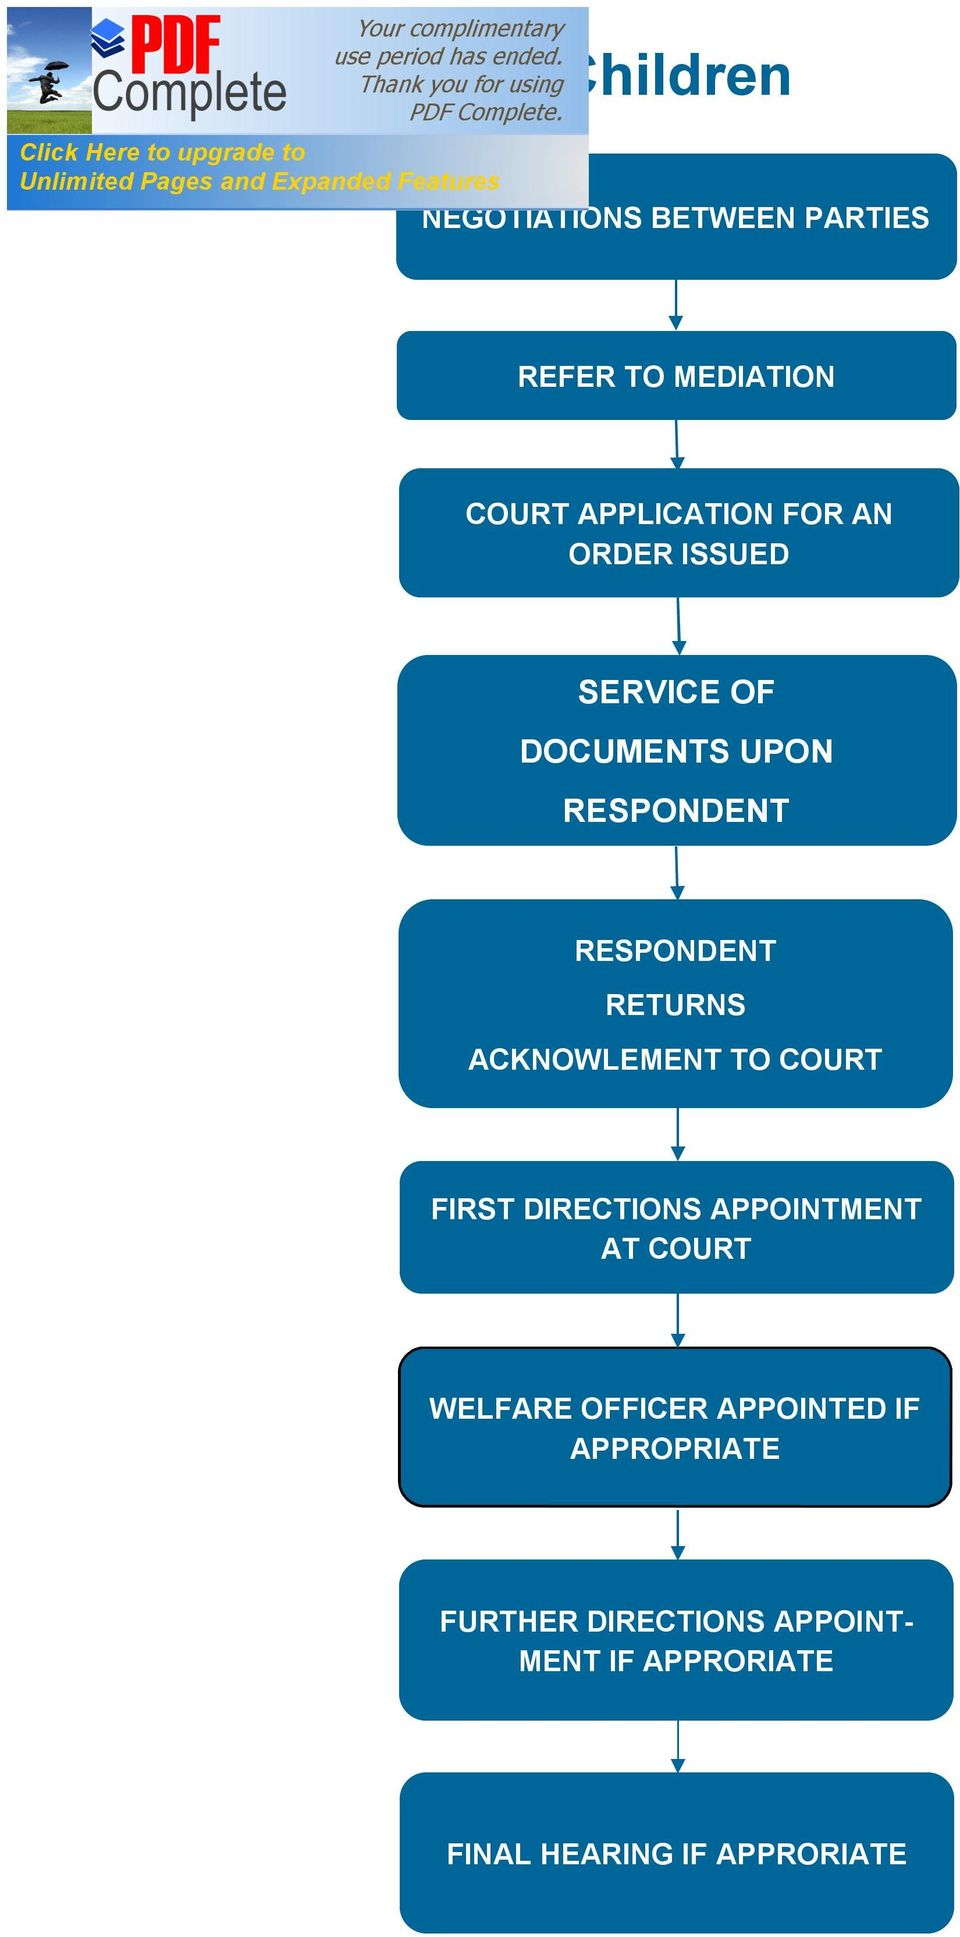 FIRST DIRECTIONS APPOINTMENT AT COURT WELFARE OFFICER APPOINTED IF